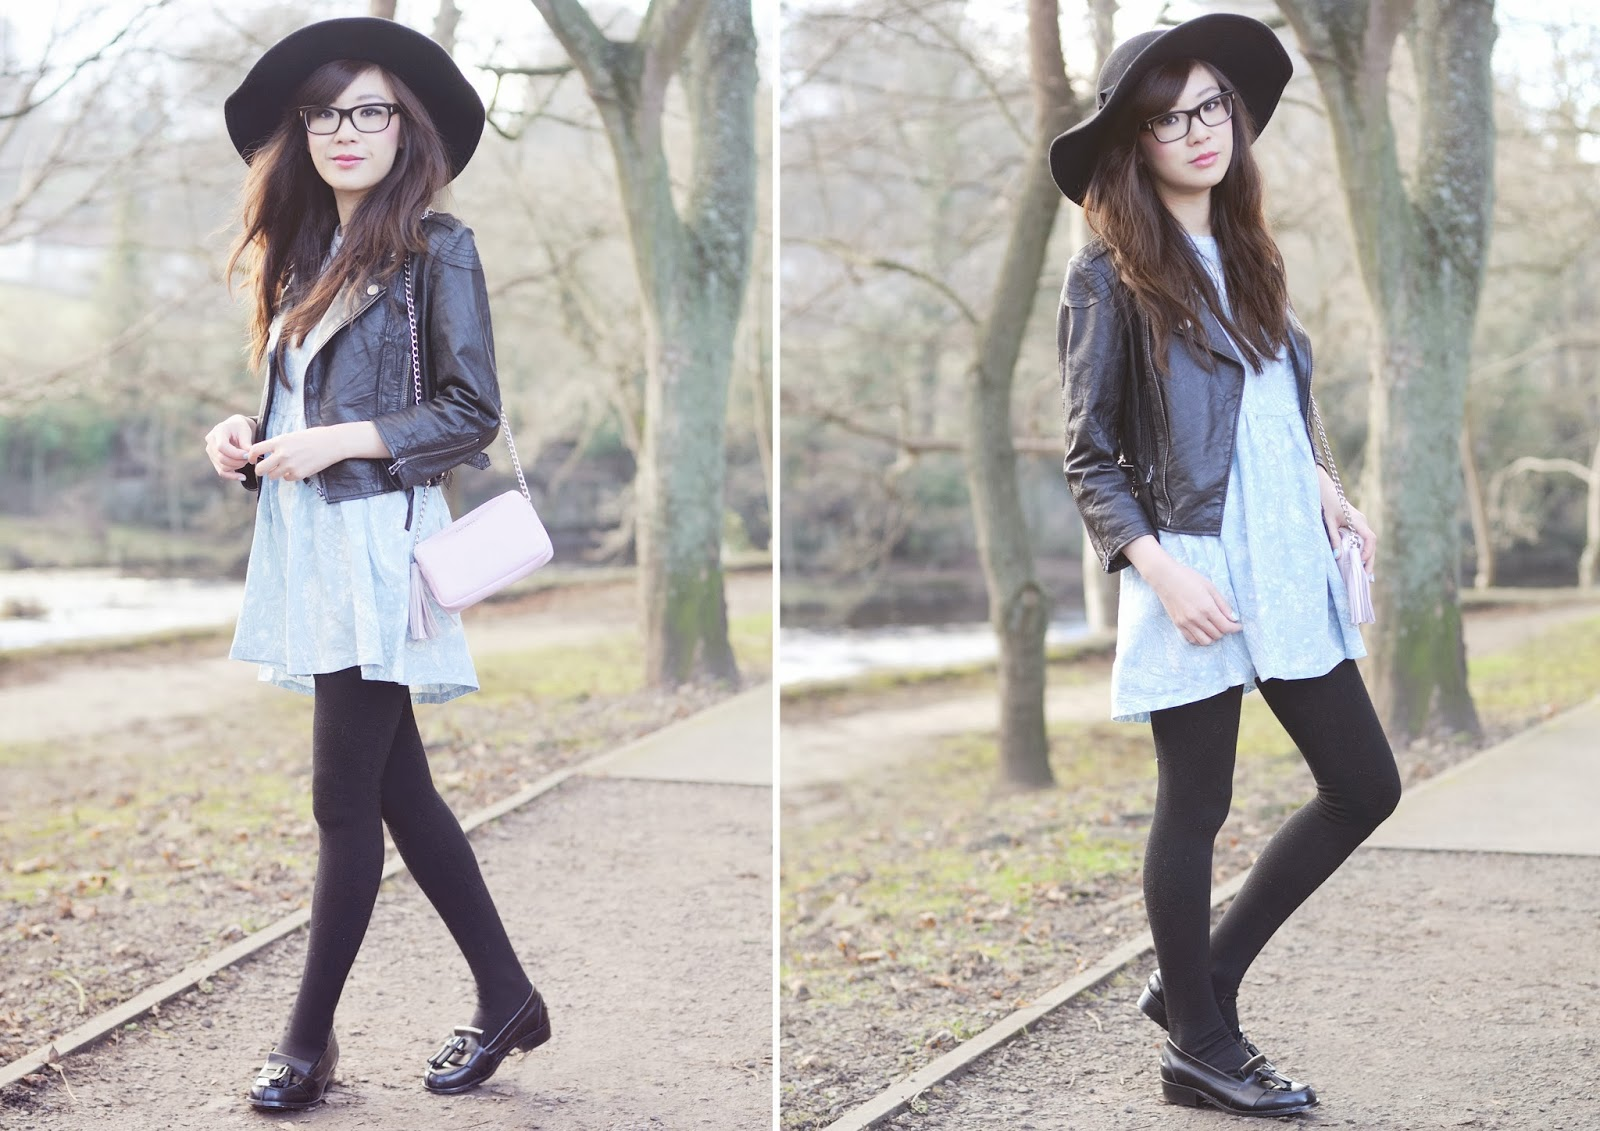 Alexa chung style, smock dress, winter pastels, uk fashion blog, fashion blogger uk